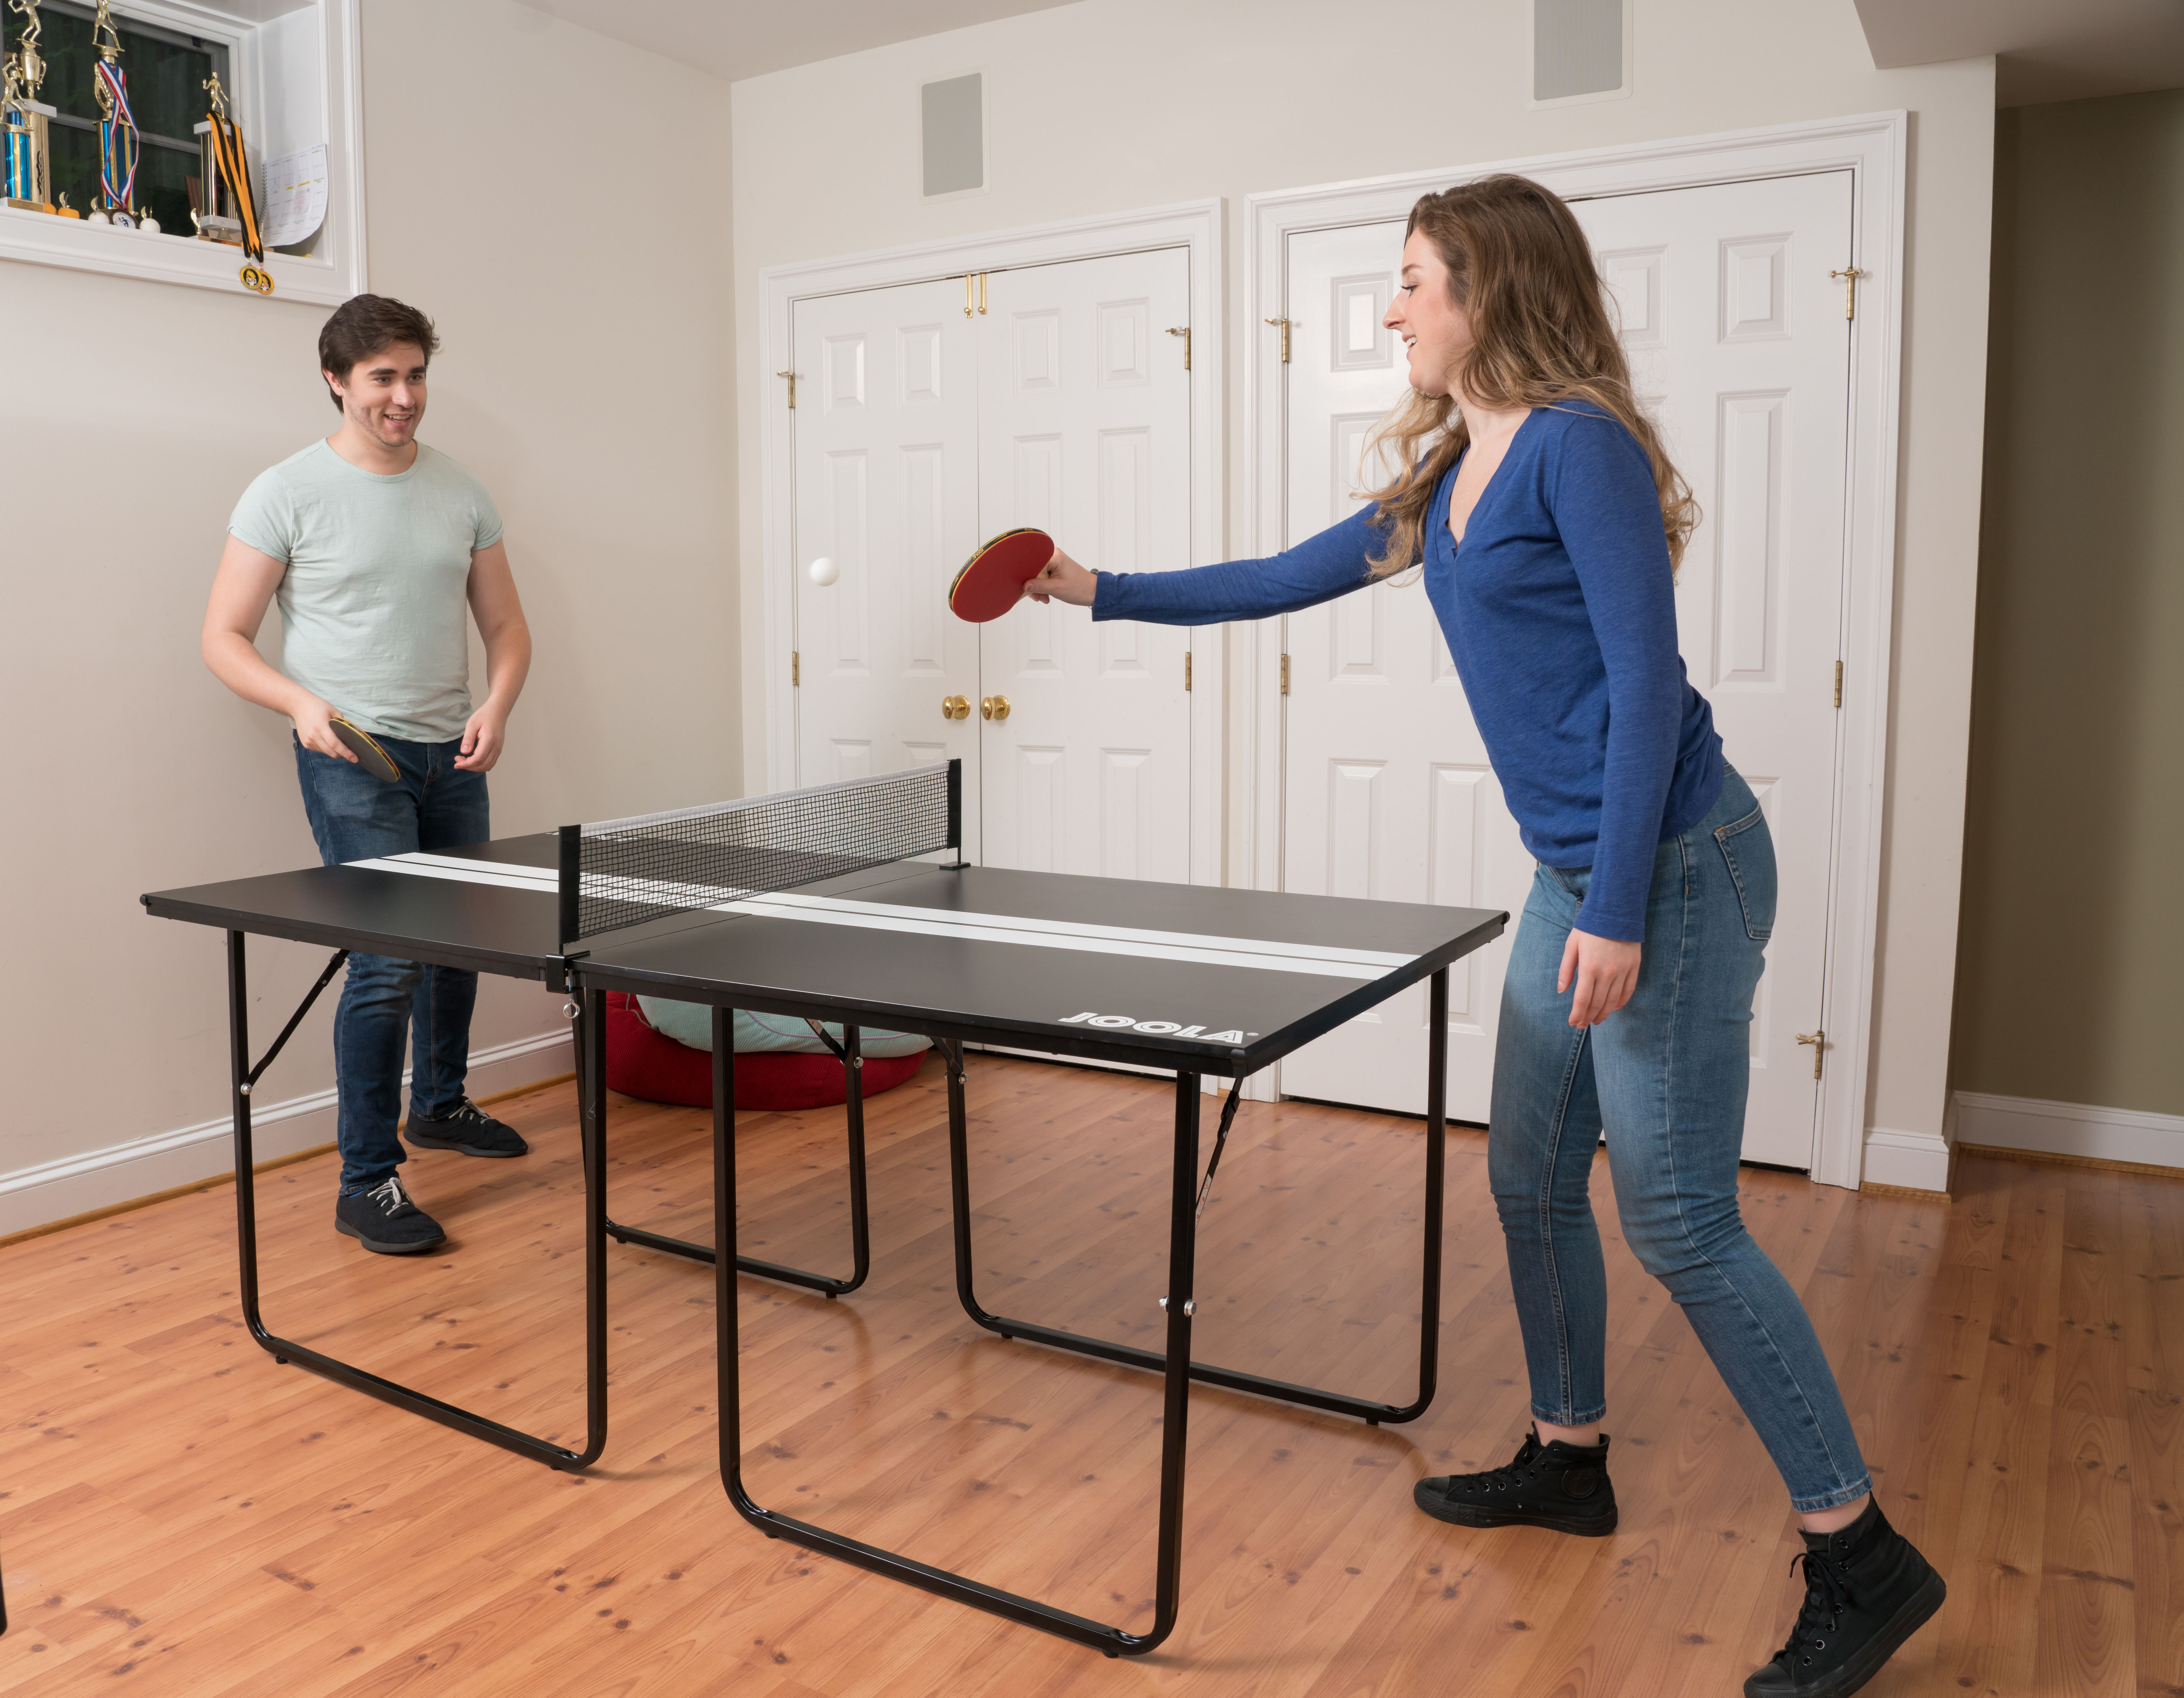 Midsize Sport Table Tennis Table Table Tennis Table Small Spaces